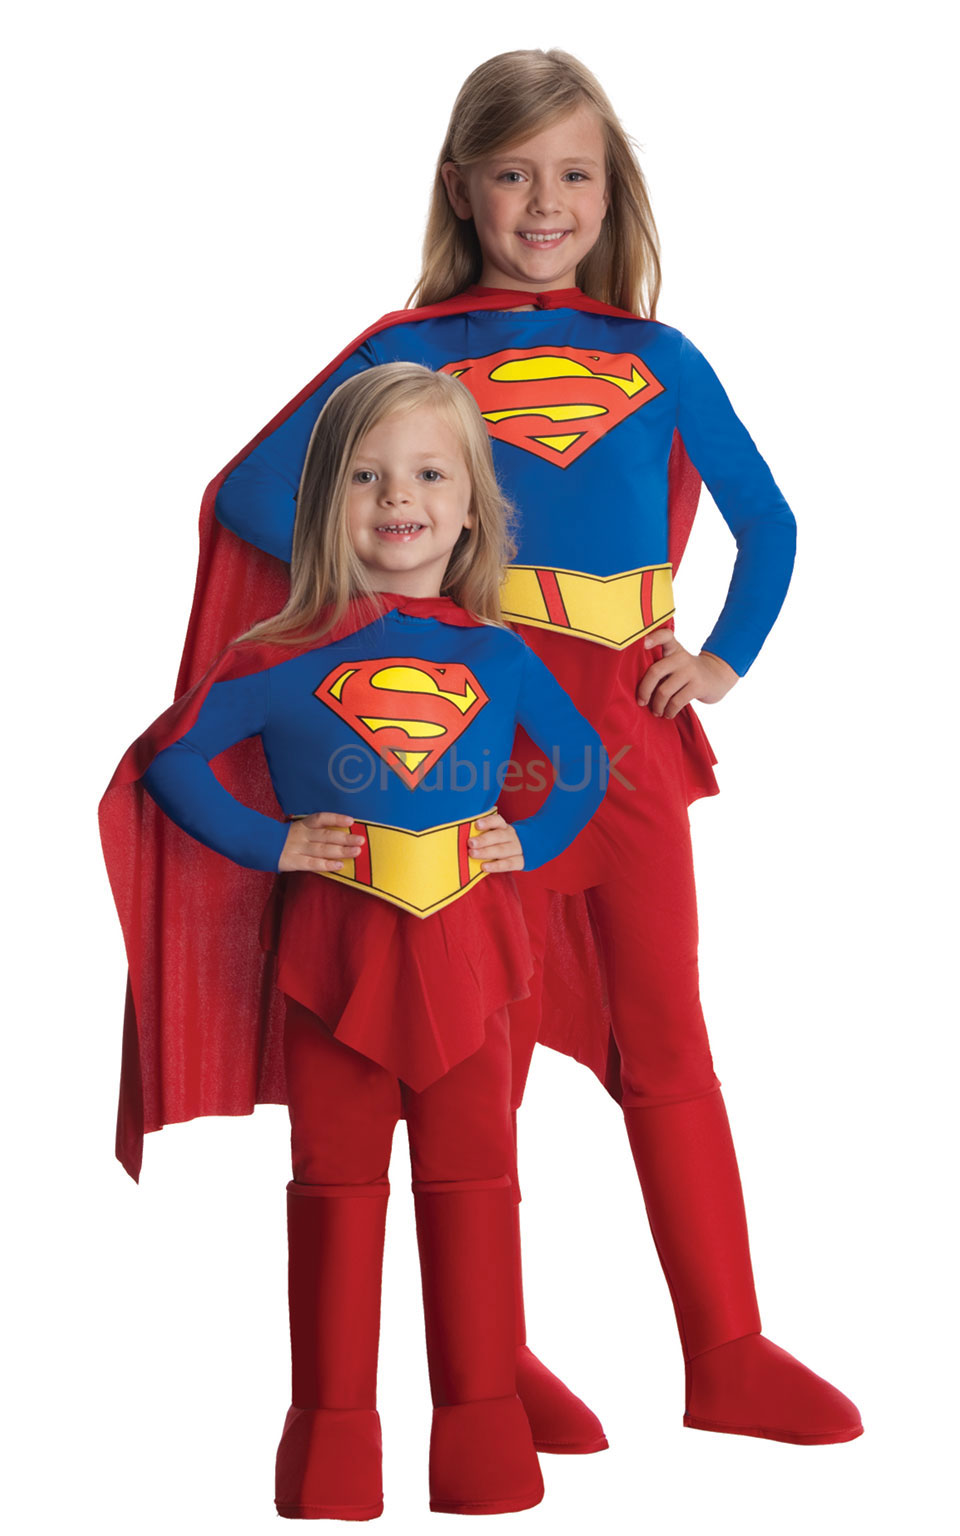 supergirl costumes superwoman costumes  sc 1 st  Little Star Parties & Deluxe Supergirl Costume Fancy Dress Costumes u0026 Party Supplies ...